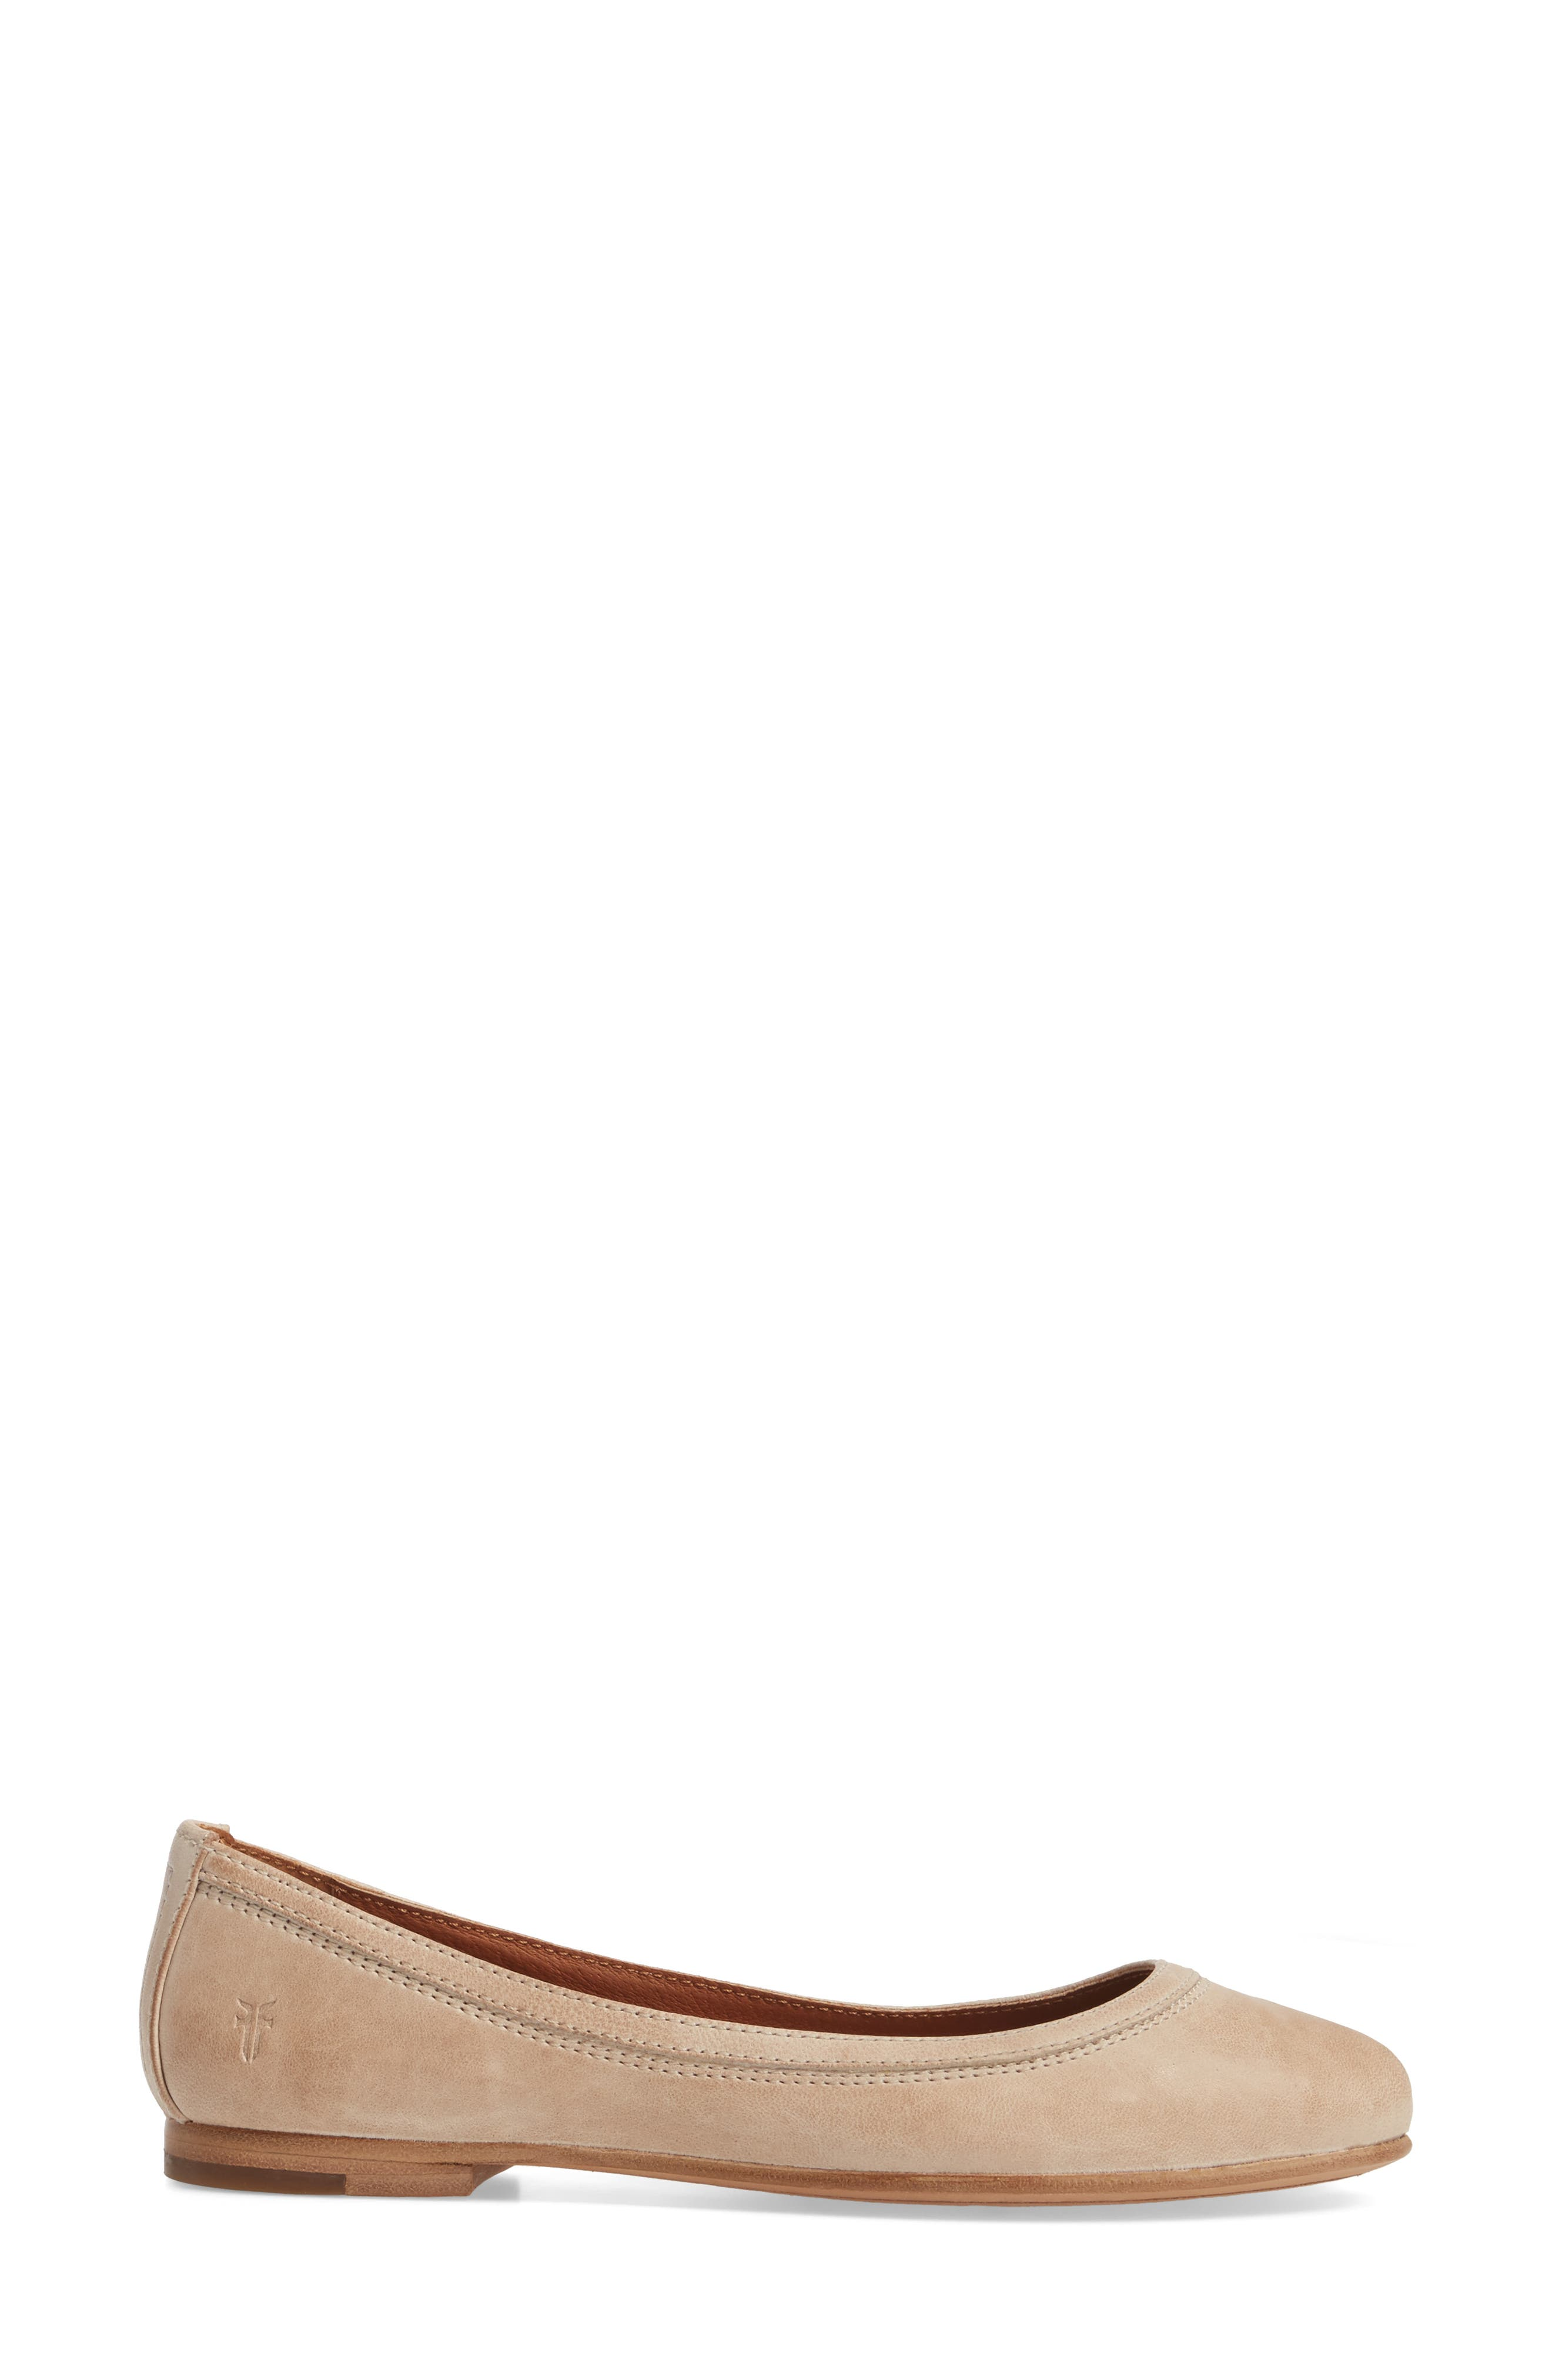 'Carson' Ballet Flat,                             Alternate thumbnail 4, color,                             CREAM LEATHER